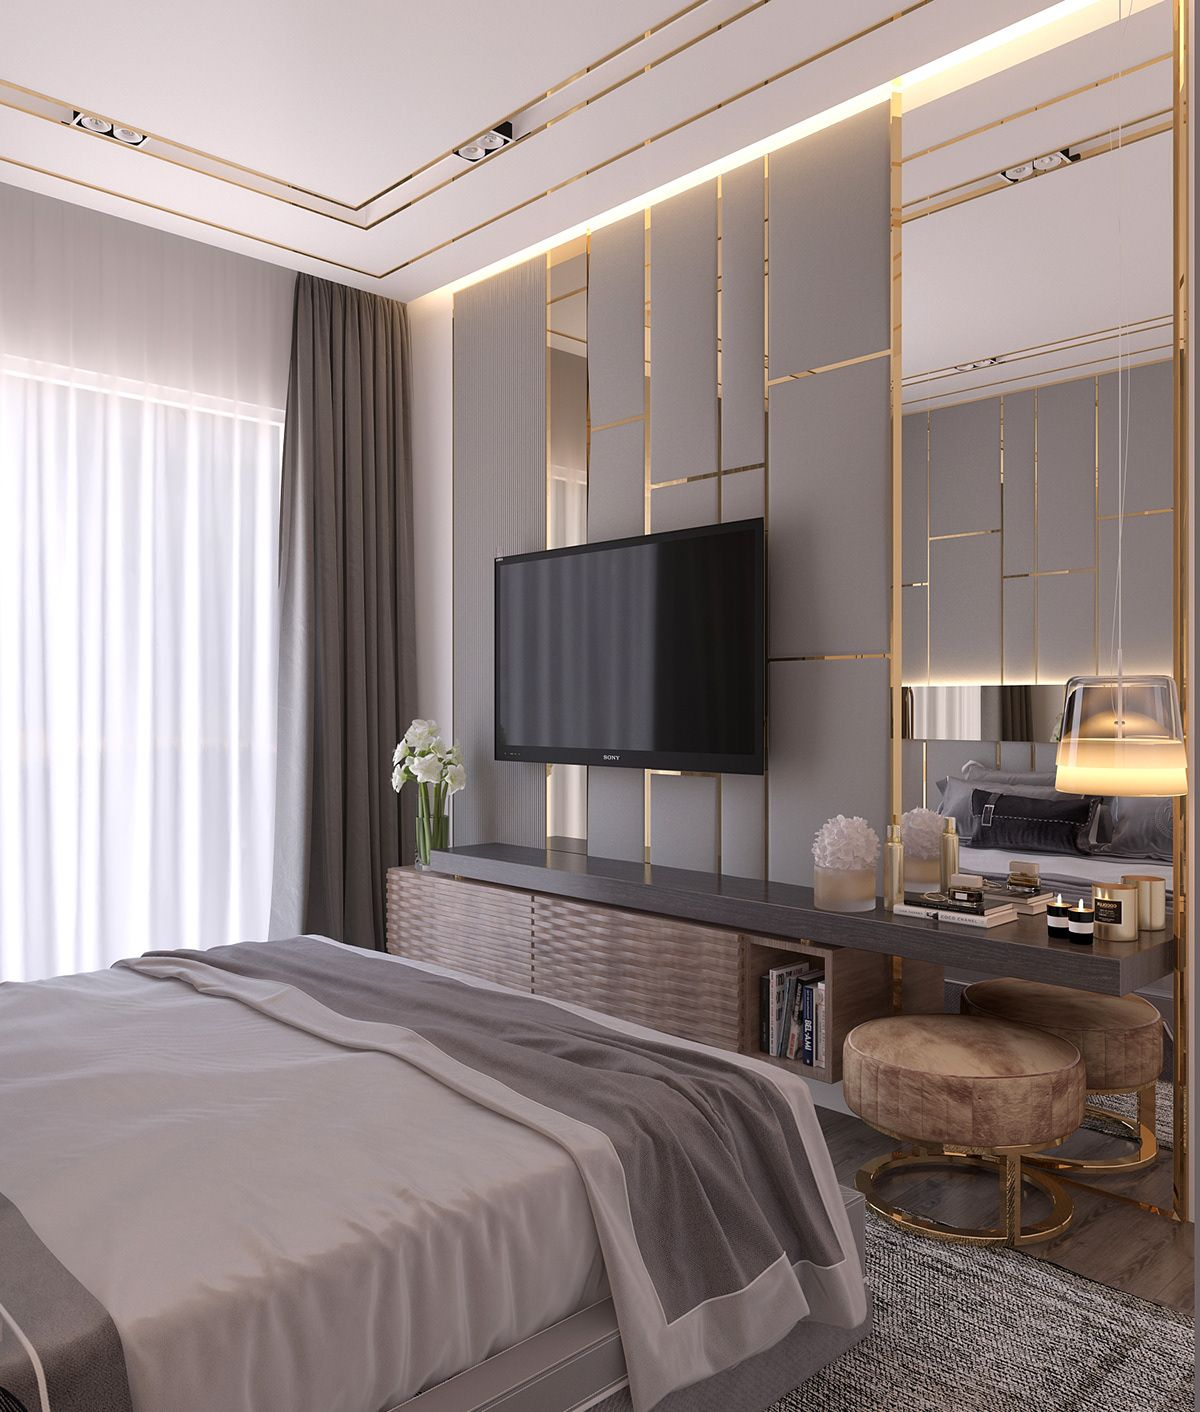 Modern Style Bedroom Dubai Project On Behance Bed Room In throughout 15 Clever Initiatives of How to Craft Modern Design Bedroom